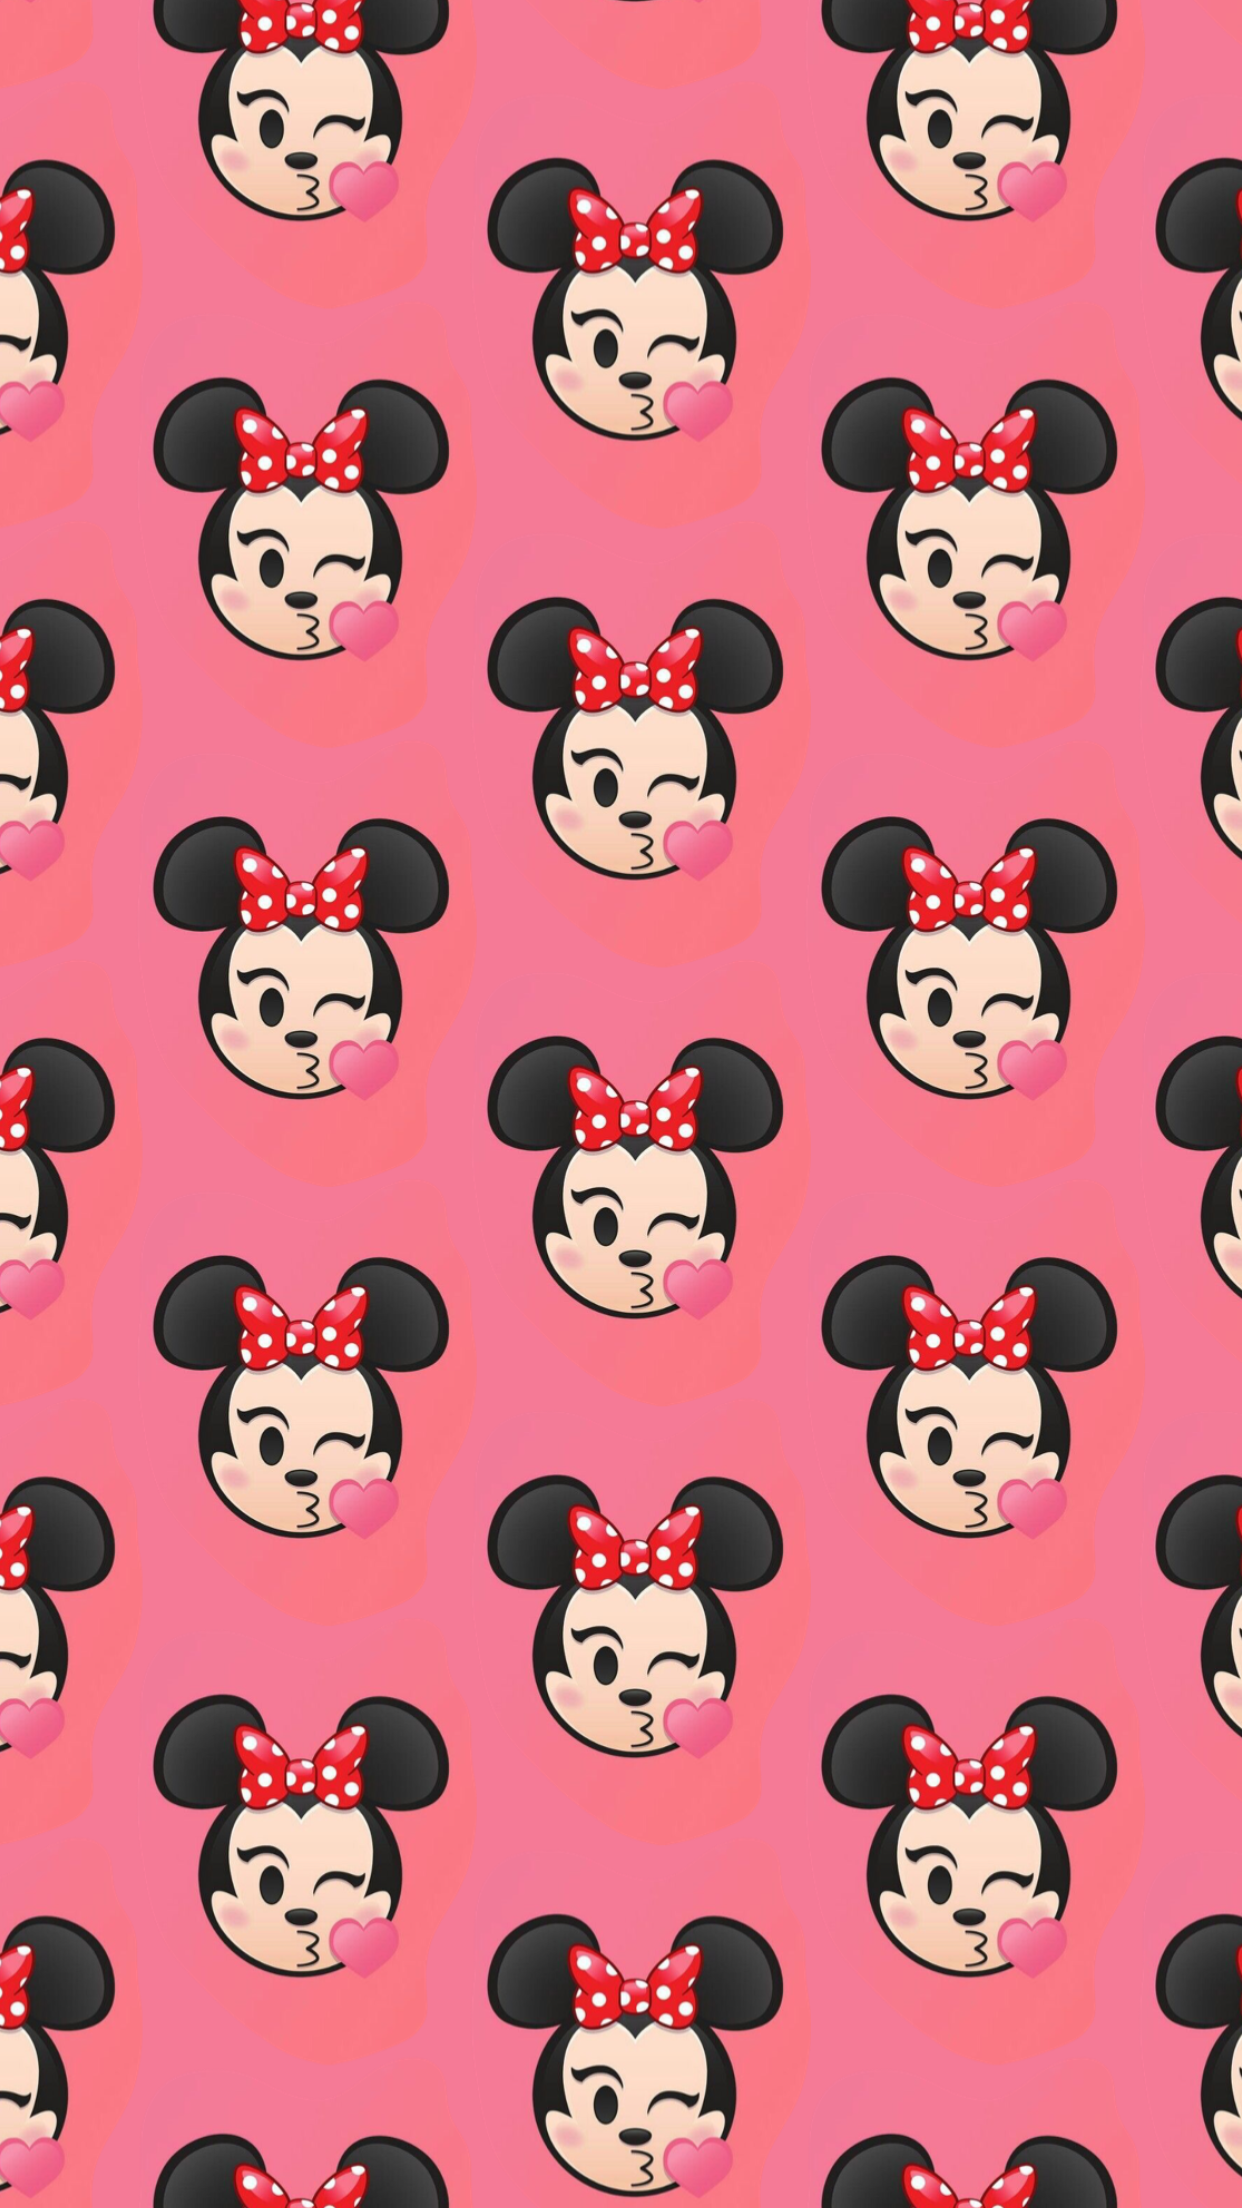 Wallpaper iphone minnie mouse - Disney Fabric Disney Wallpaper Disney Art Disney Stuff Disney Cartoons Wrapping Papers Minnie Mouse Iphone 6 Mice